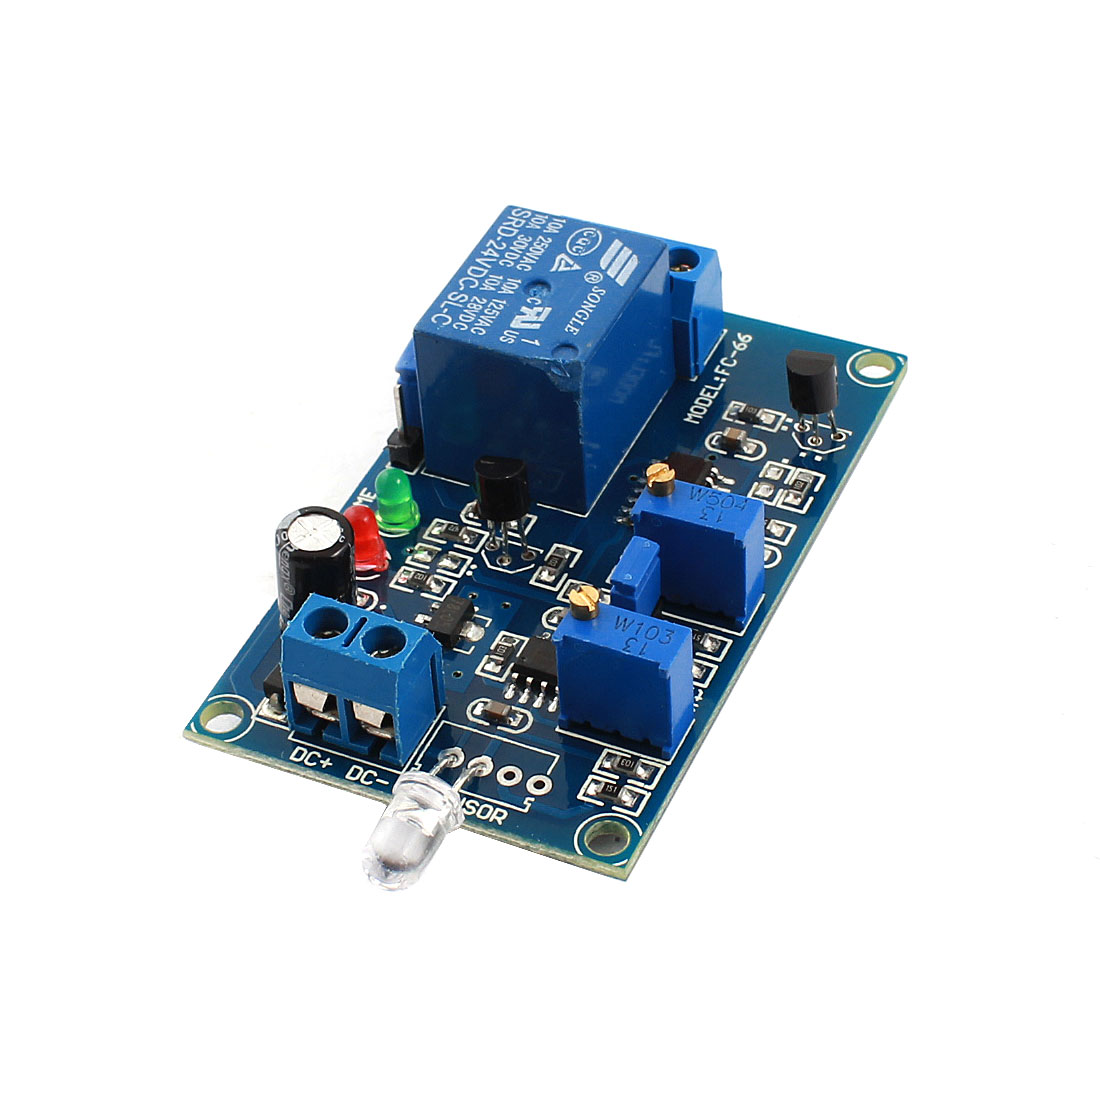 FC-66 DC24V 1 Channel Non Light Trigger Photosensitive Diode Delay Relay PCB Module